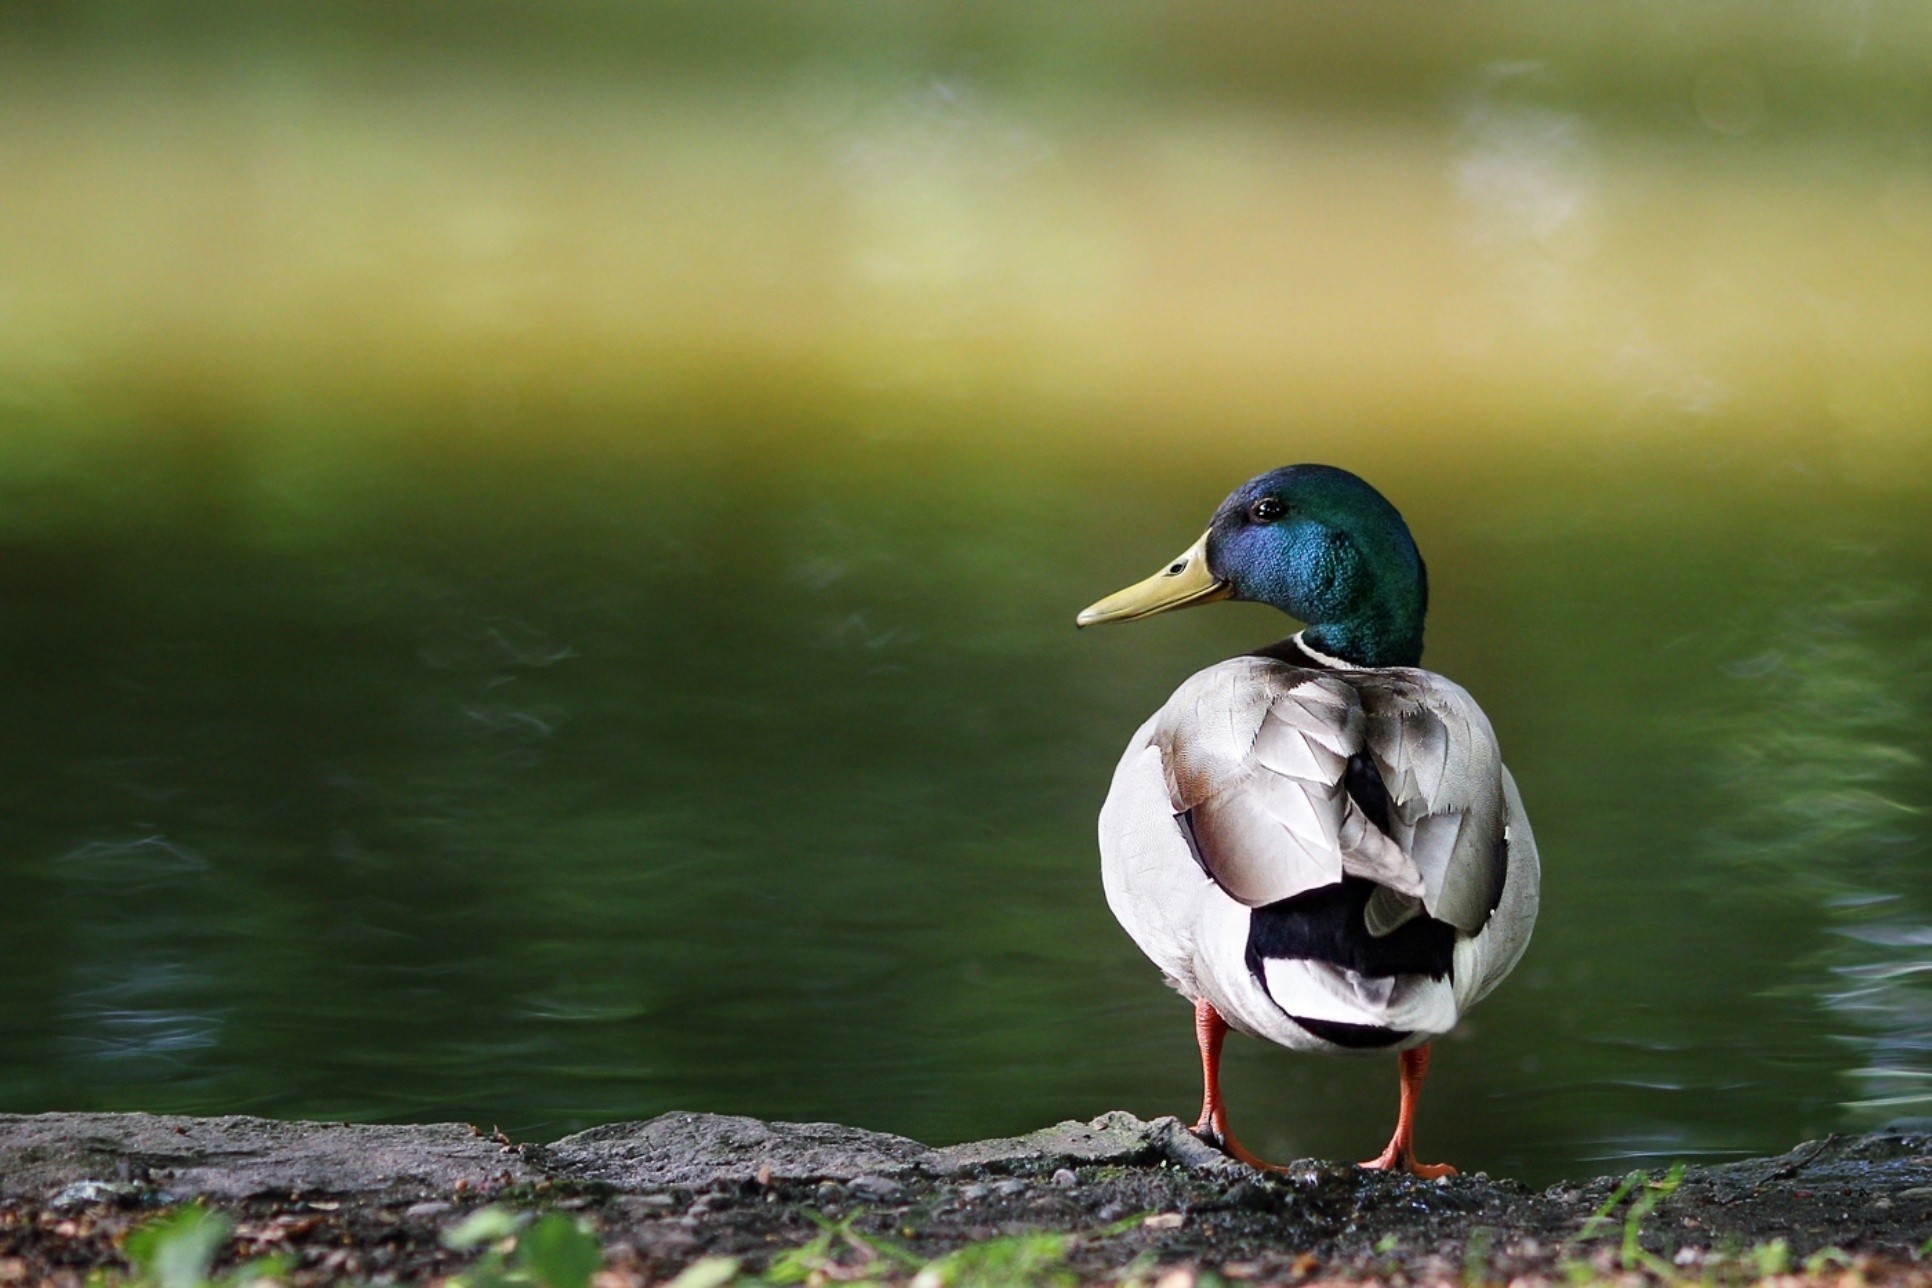 Ducks lakes depth of HD Wallpaper